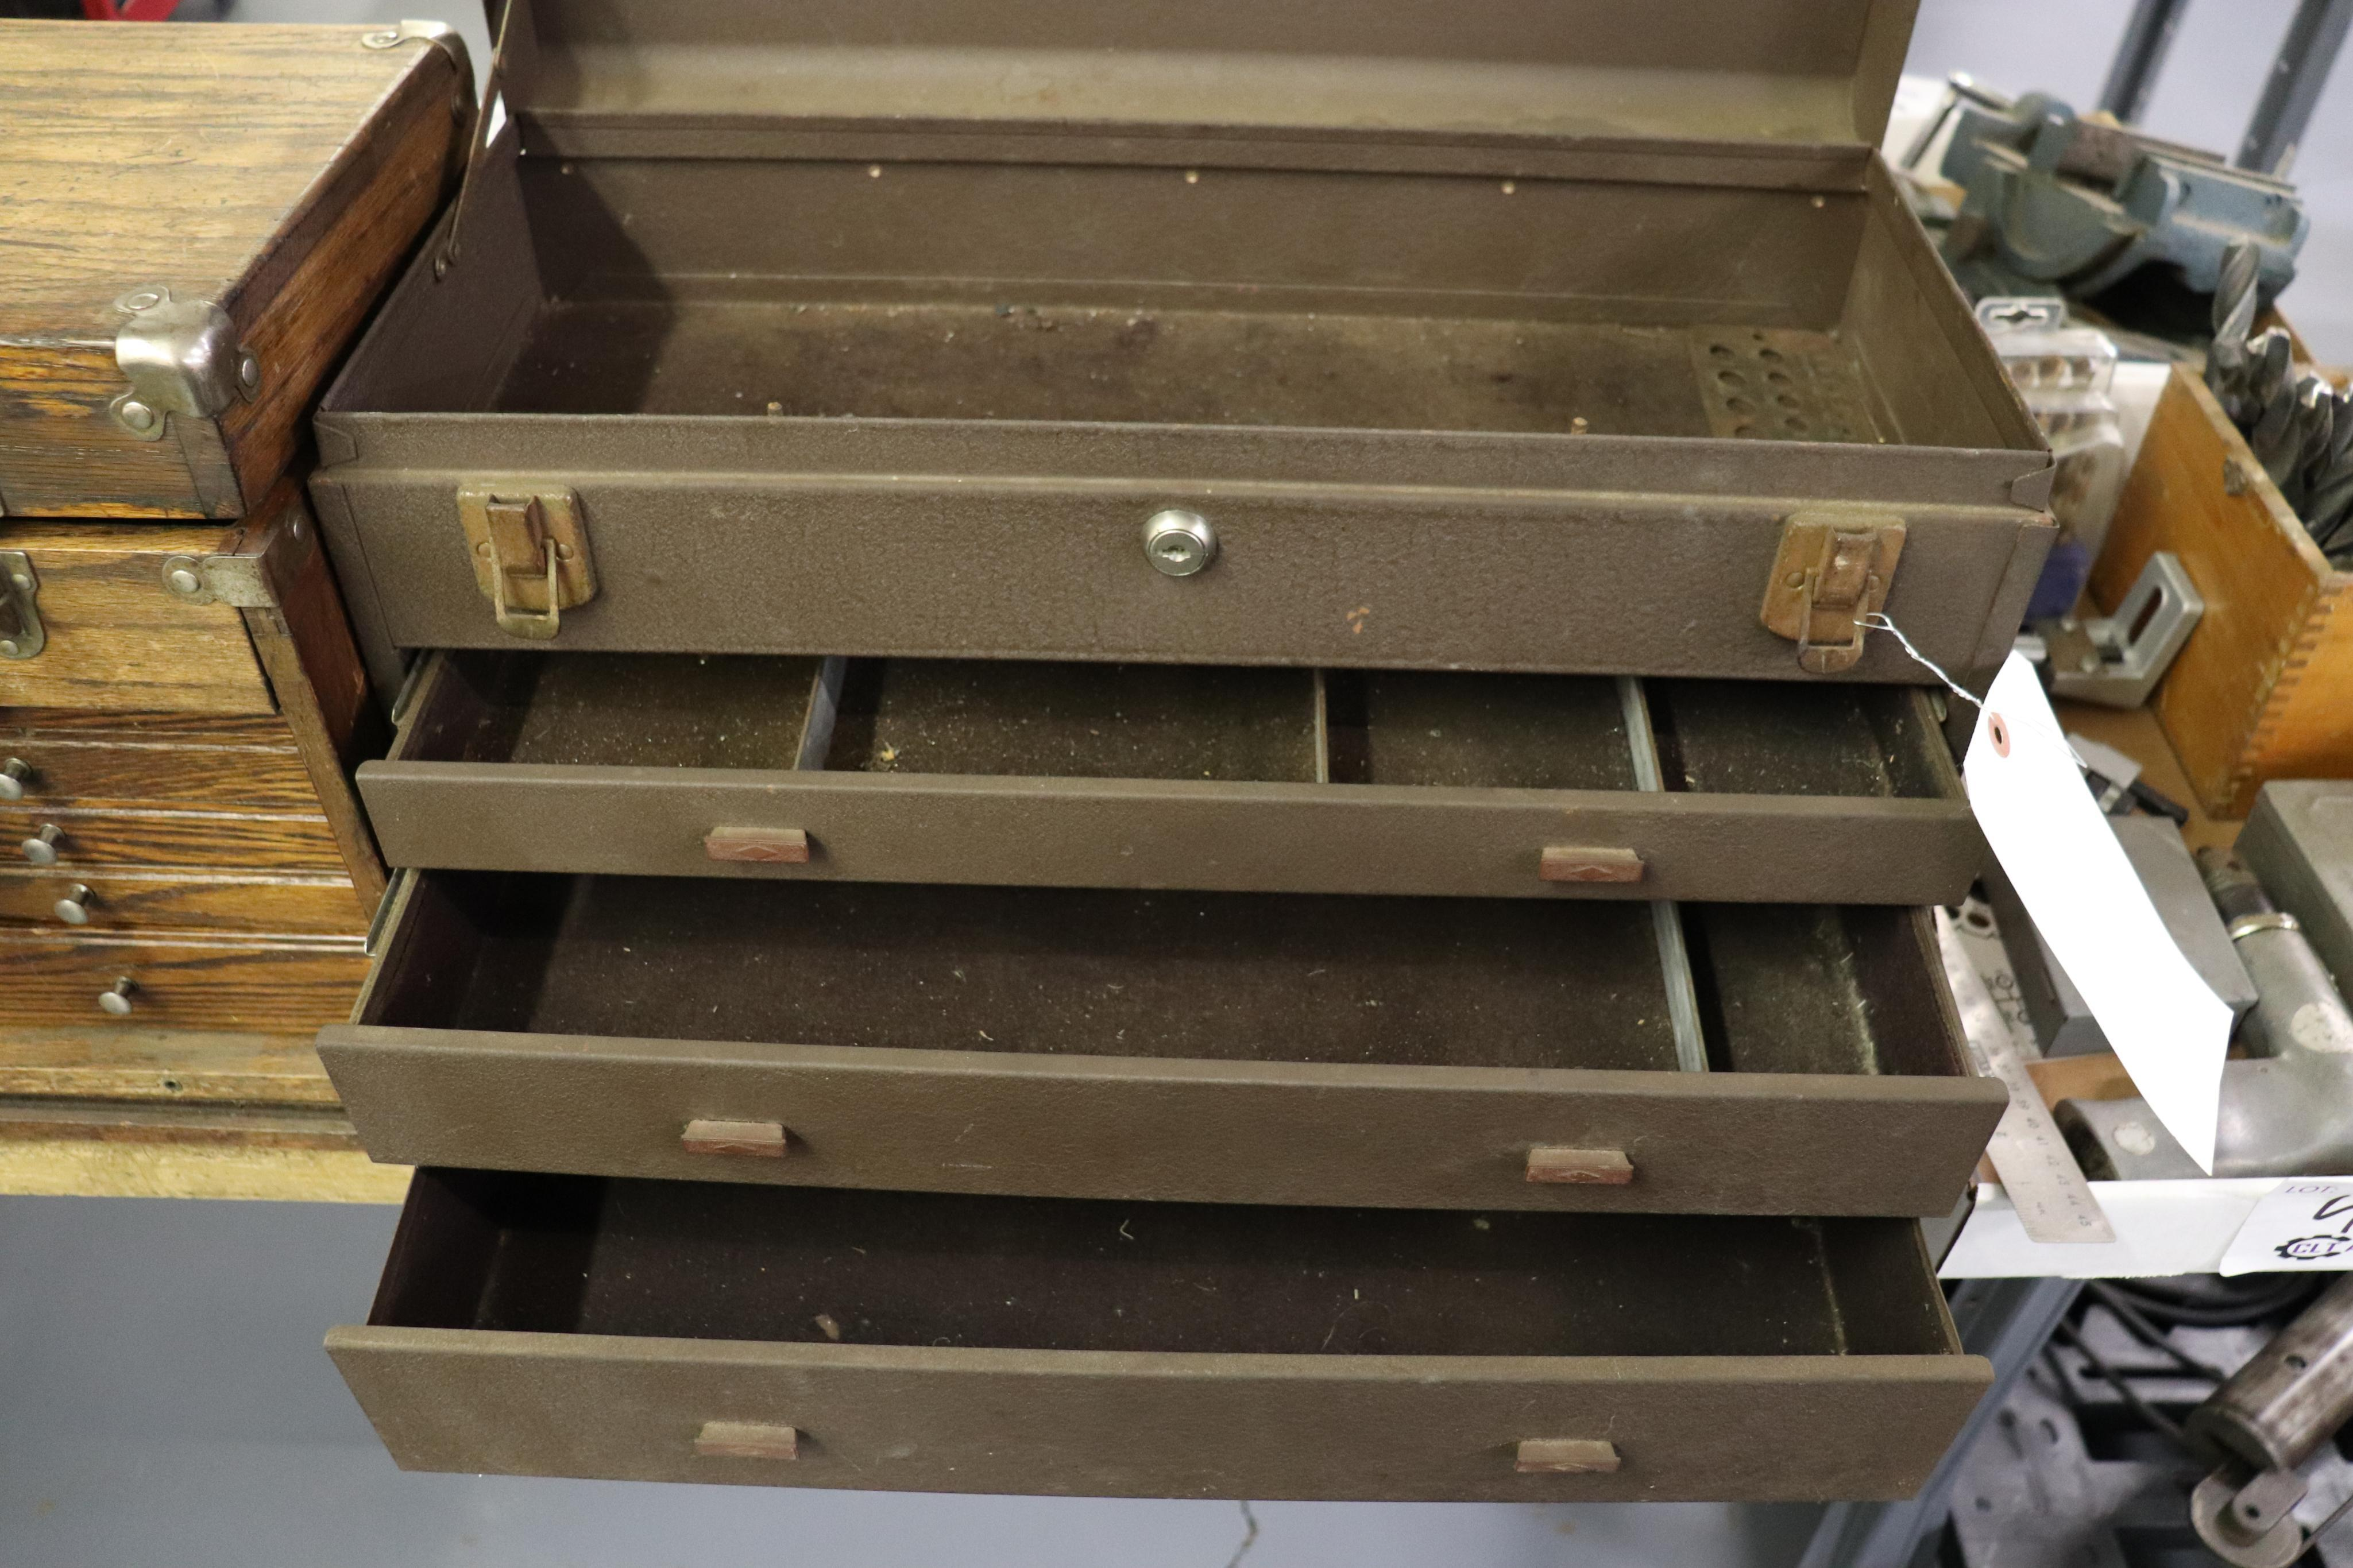 Kennedy 3 drawer tool box - Image 2 of 2